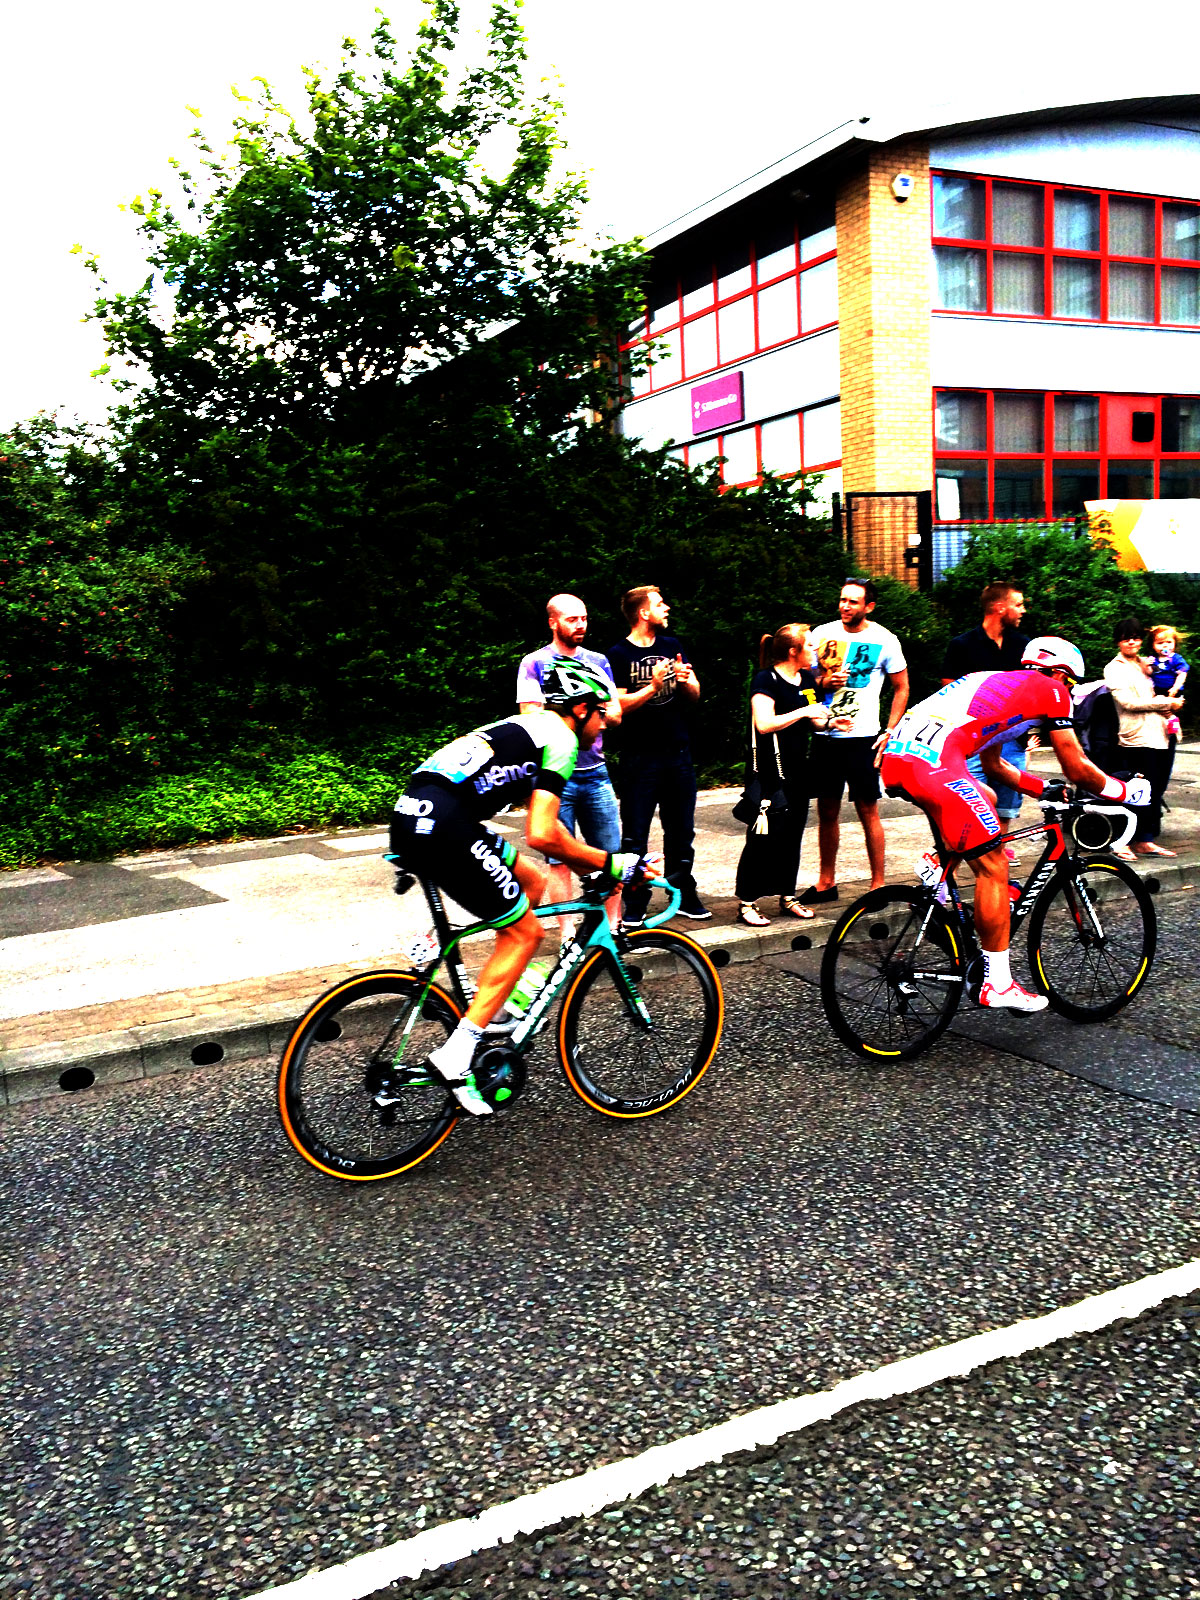 cycling-tour-de-france-sheffield-19